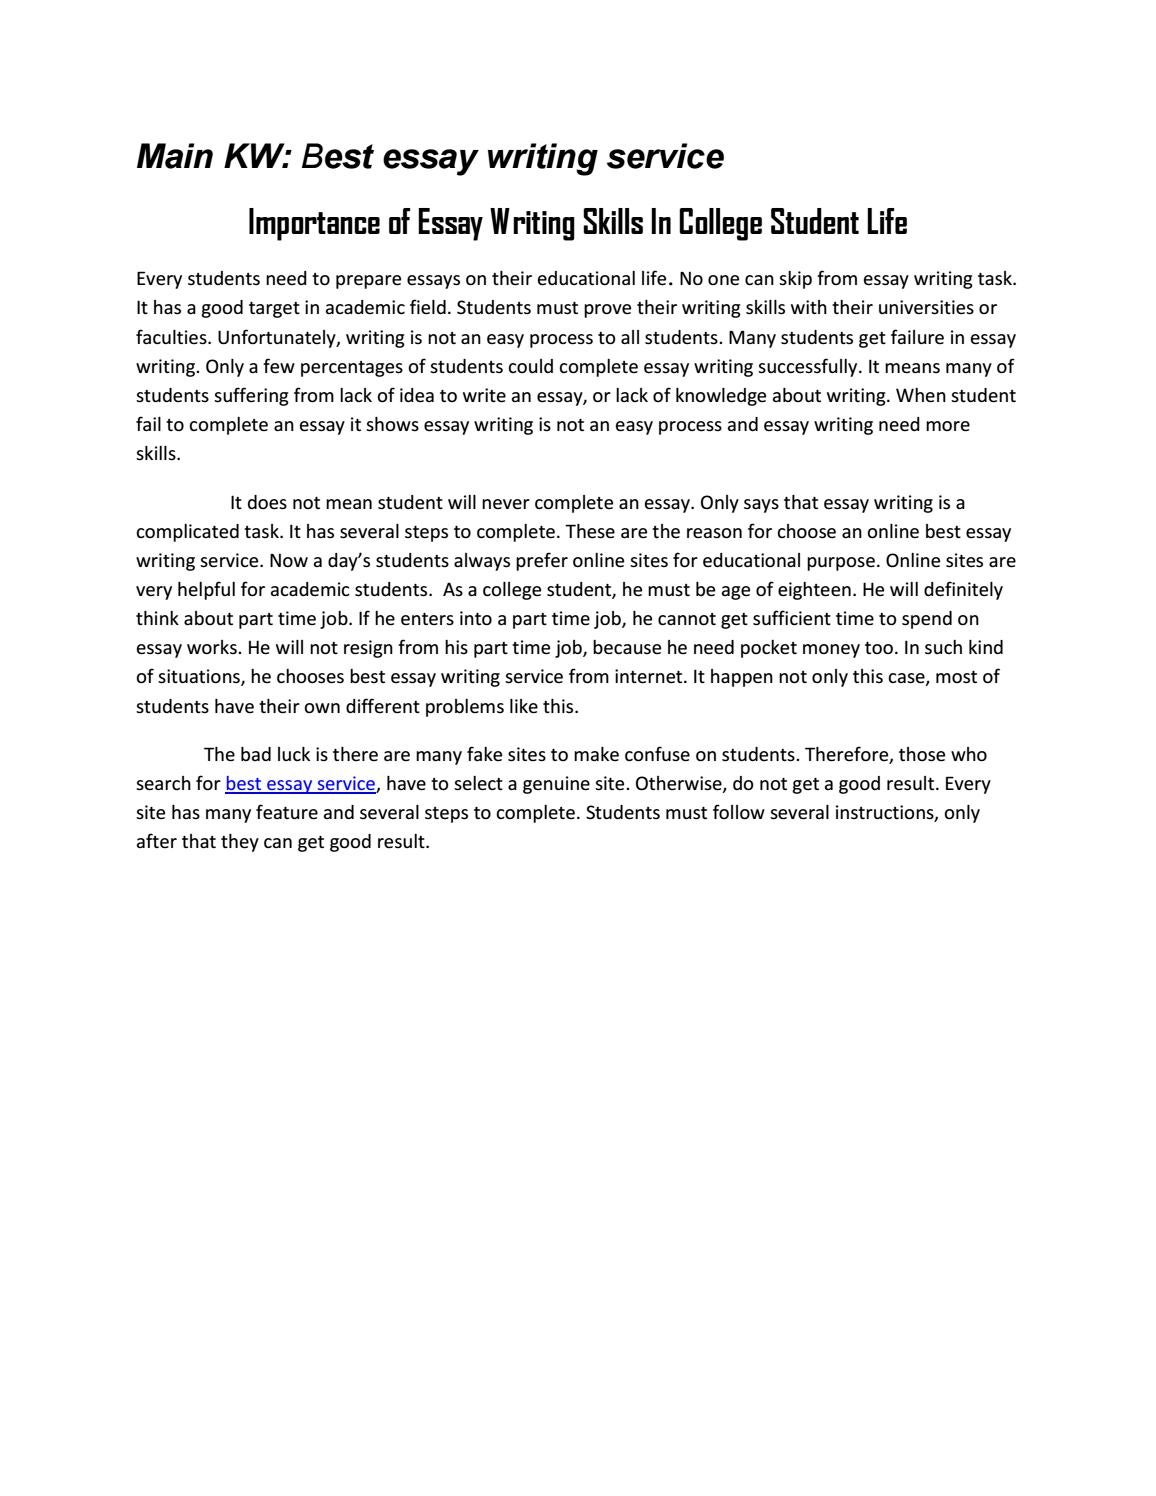 Importance of Essay Writing Skills In College Student Life